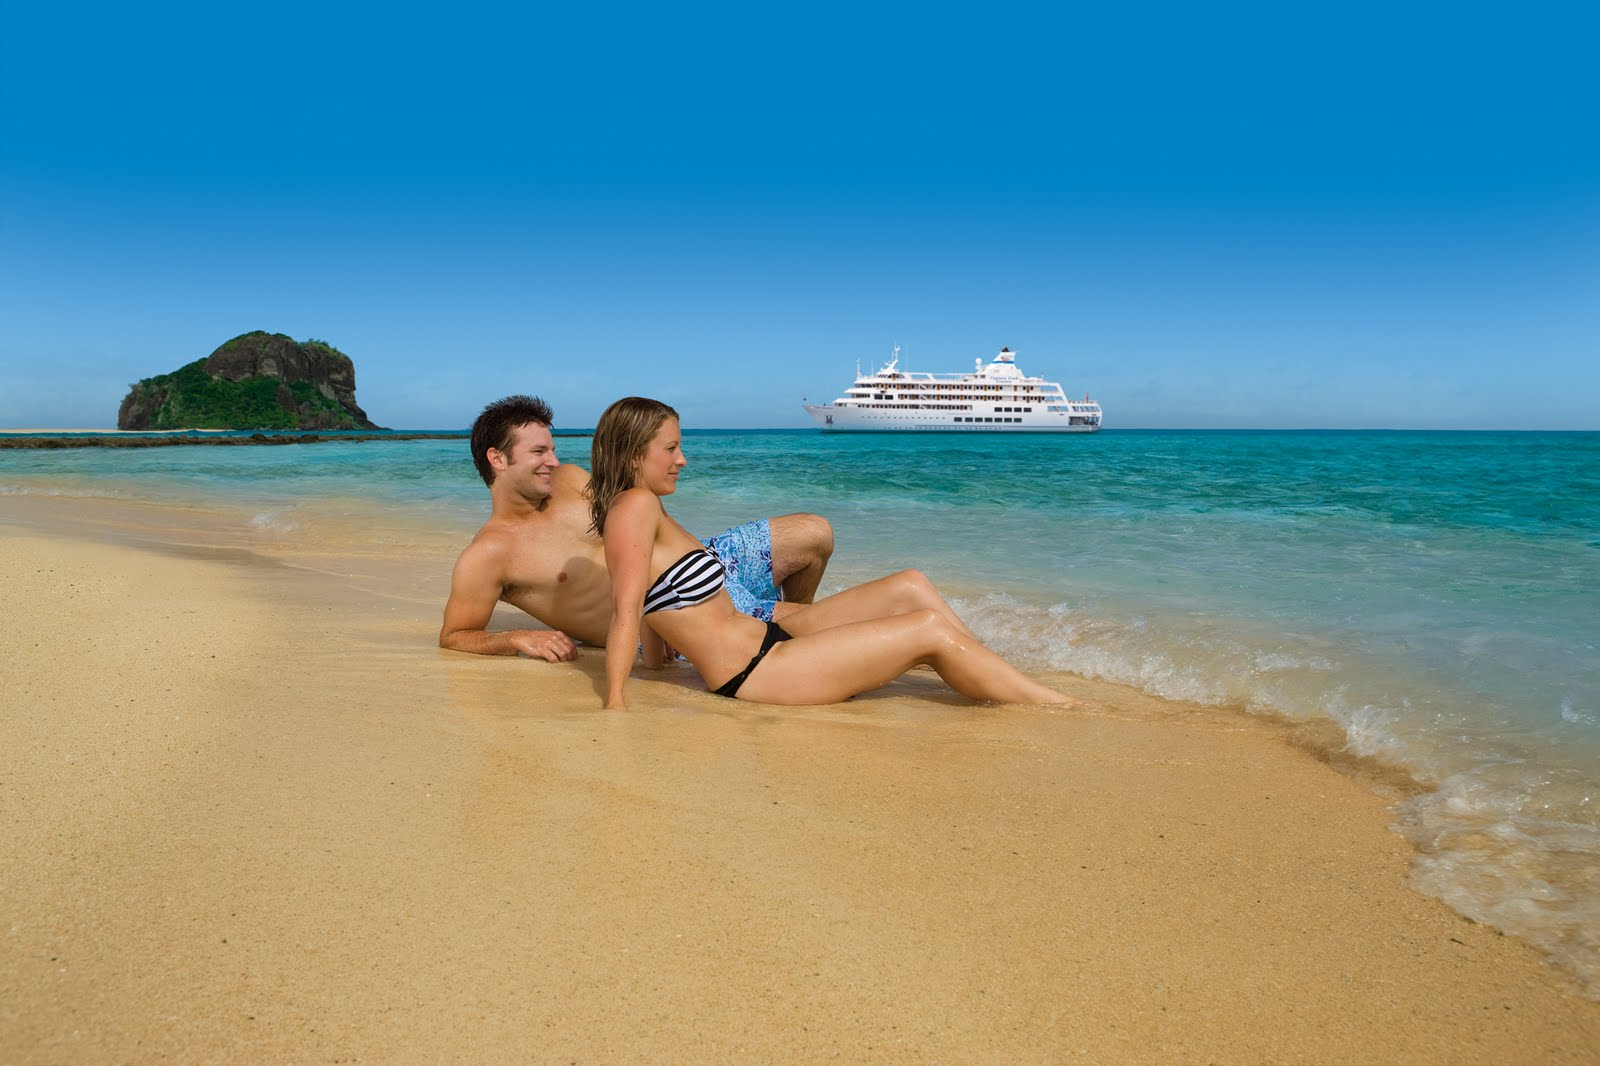 4-Night Yasawa Islands on Captain Cook Cruises - Early Bird Special - save $2210 FJD on STATEROOM per couple + No Credit Card Fees